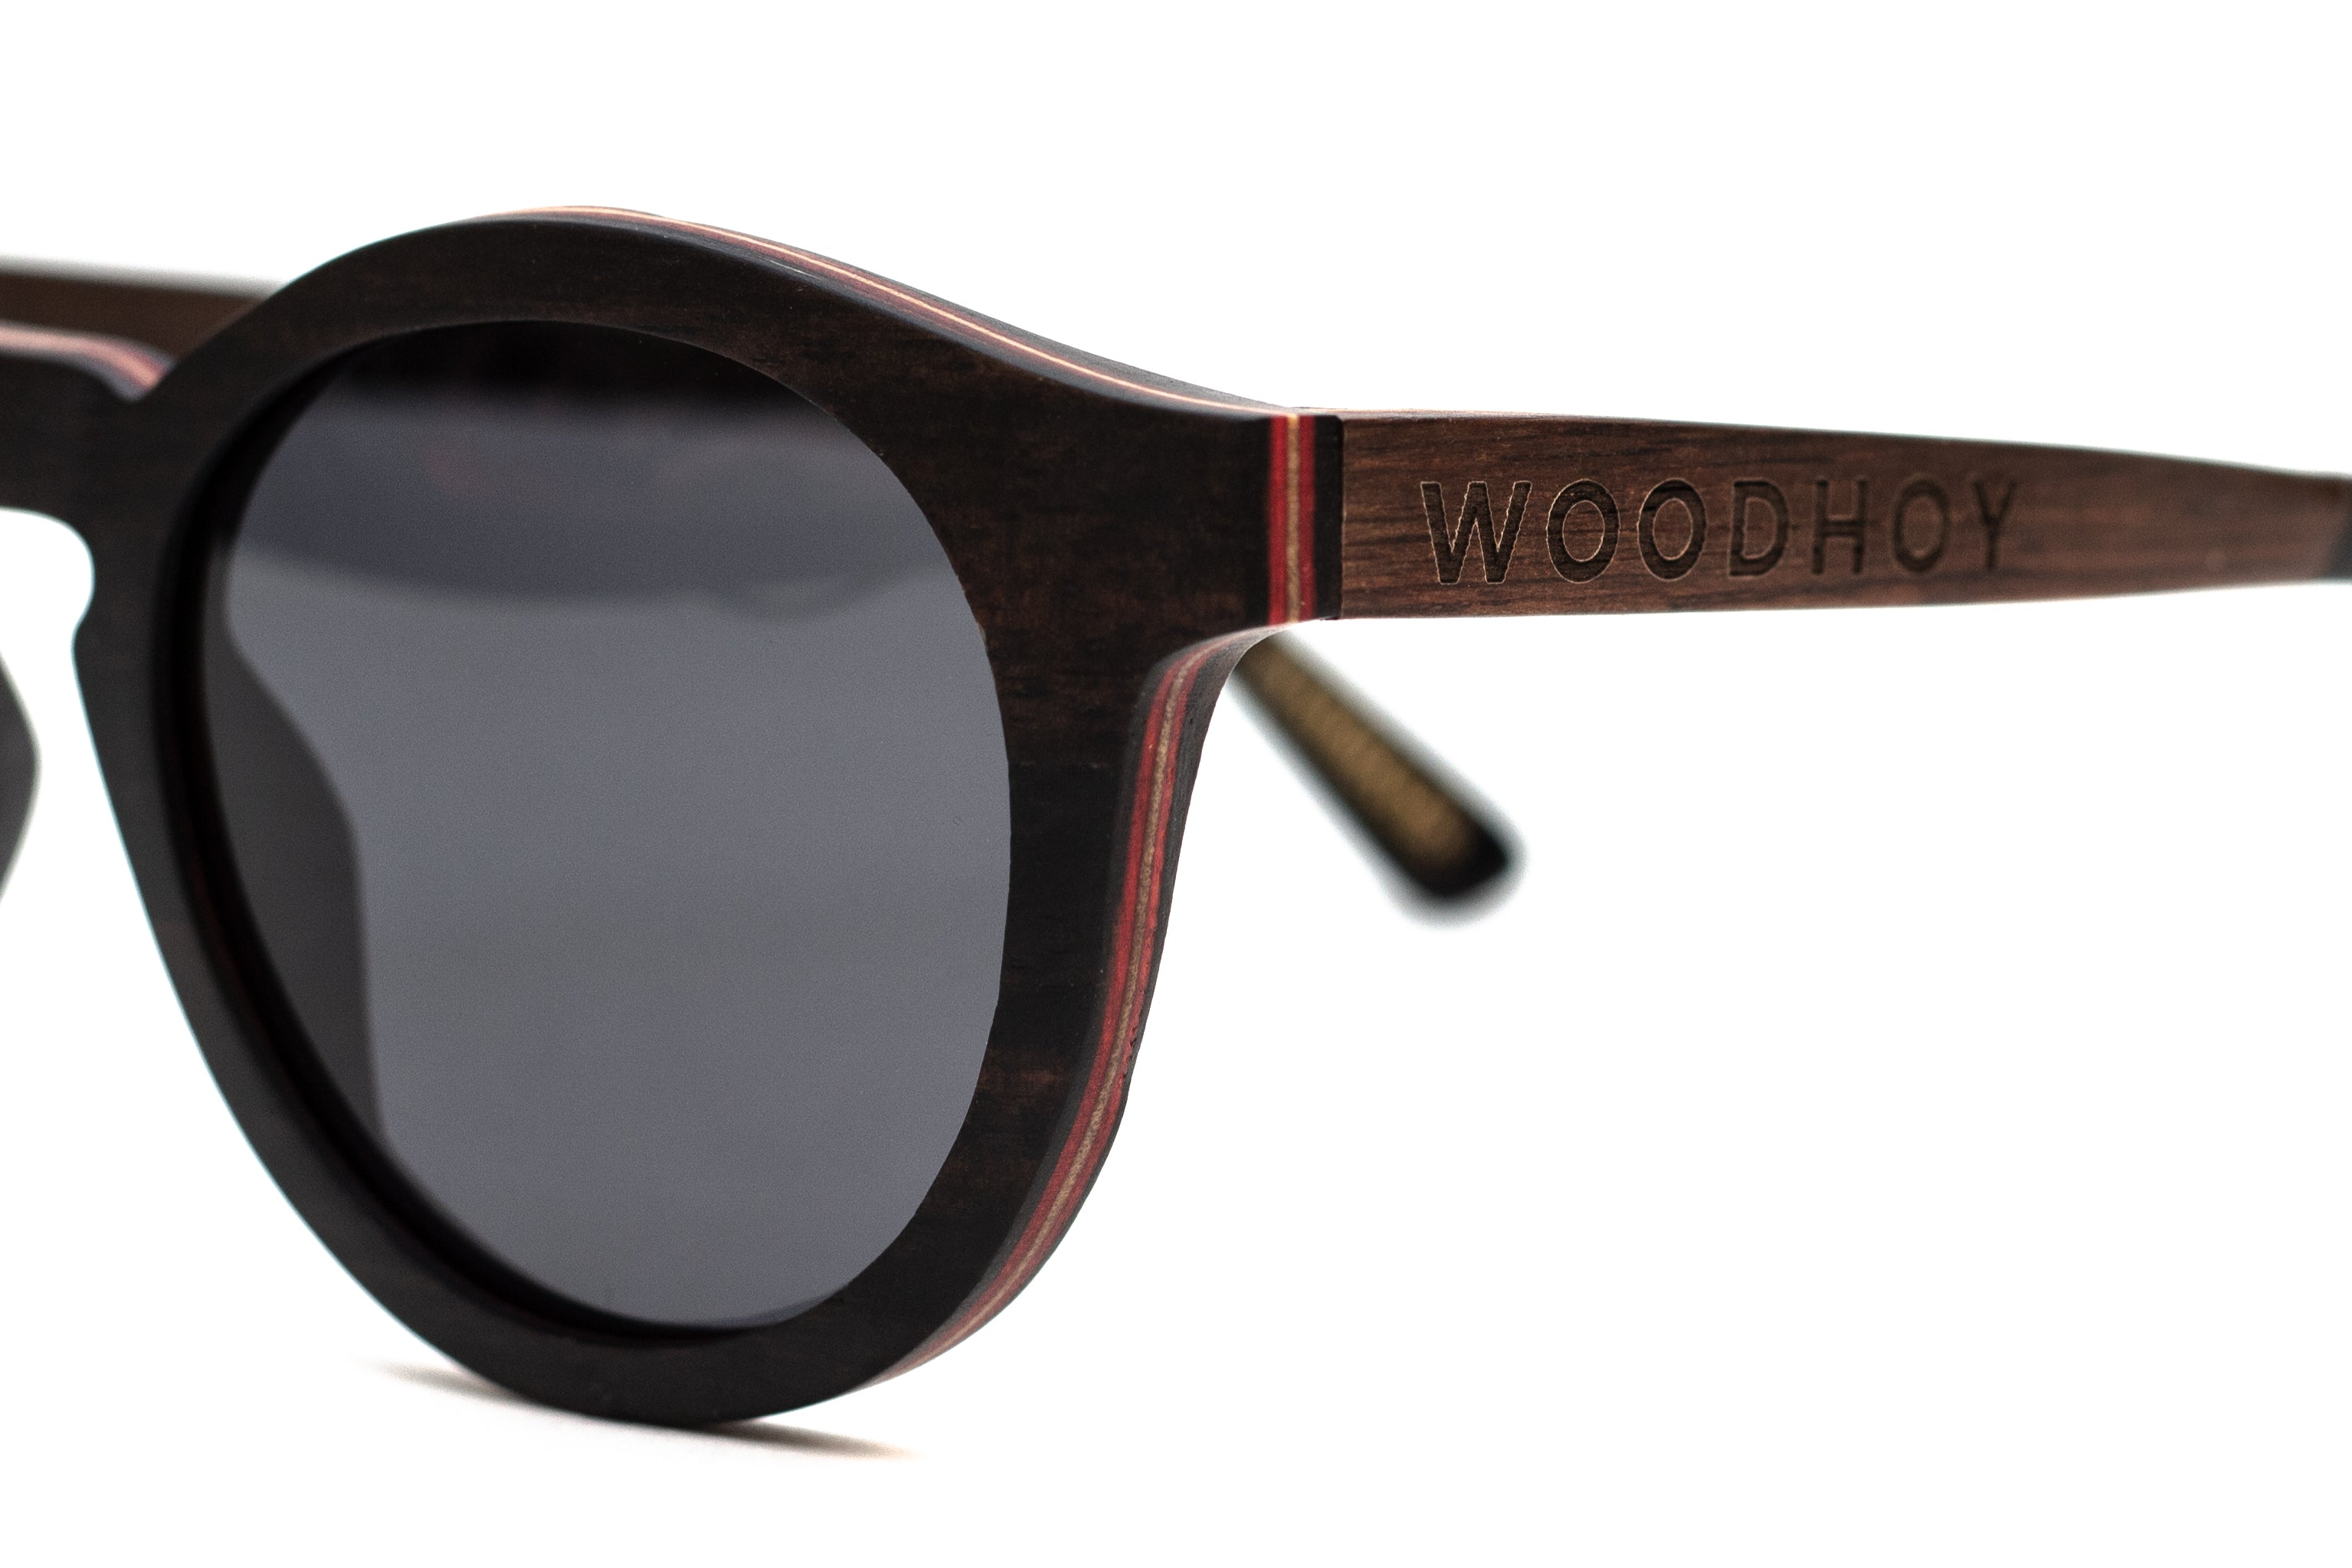 wooden sunglasses woodhoy baronetti